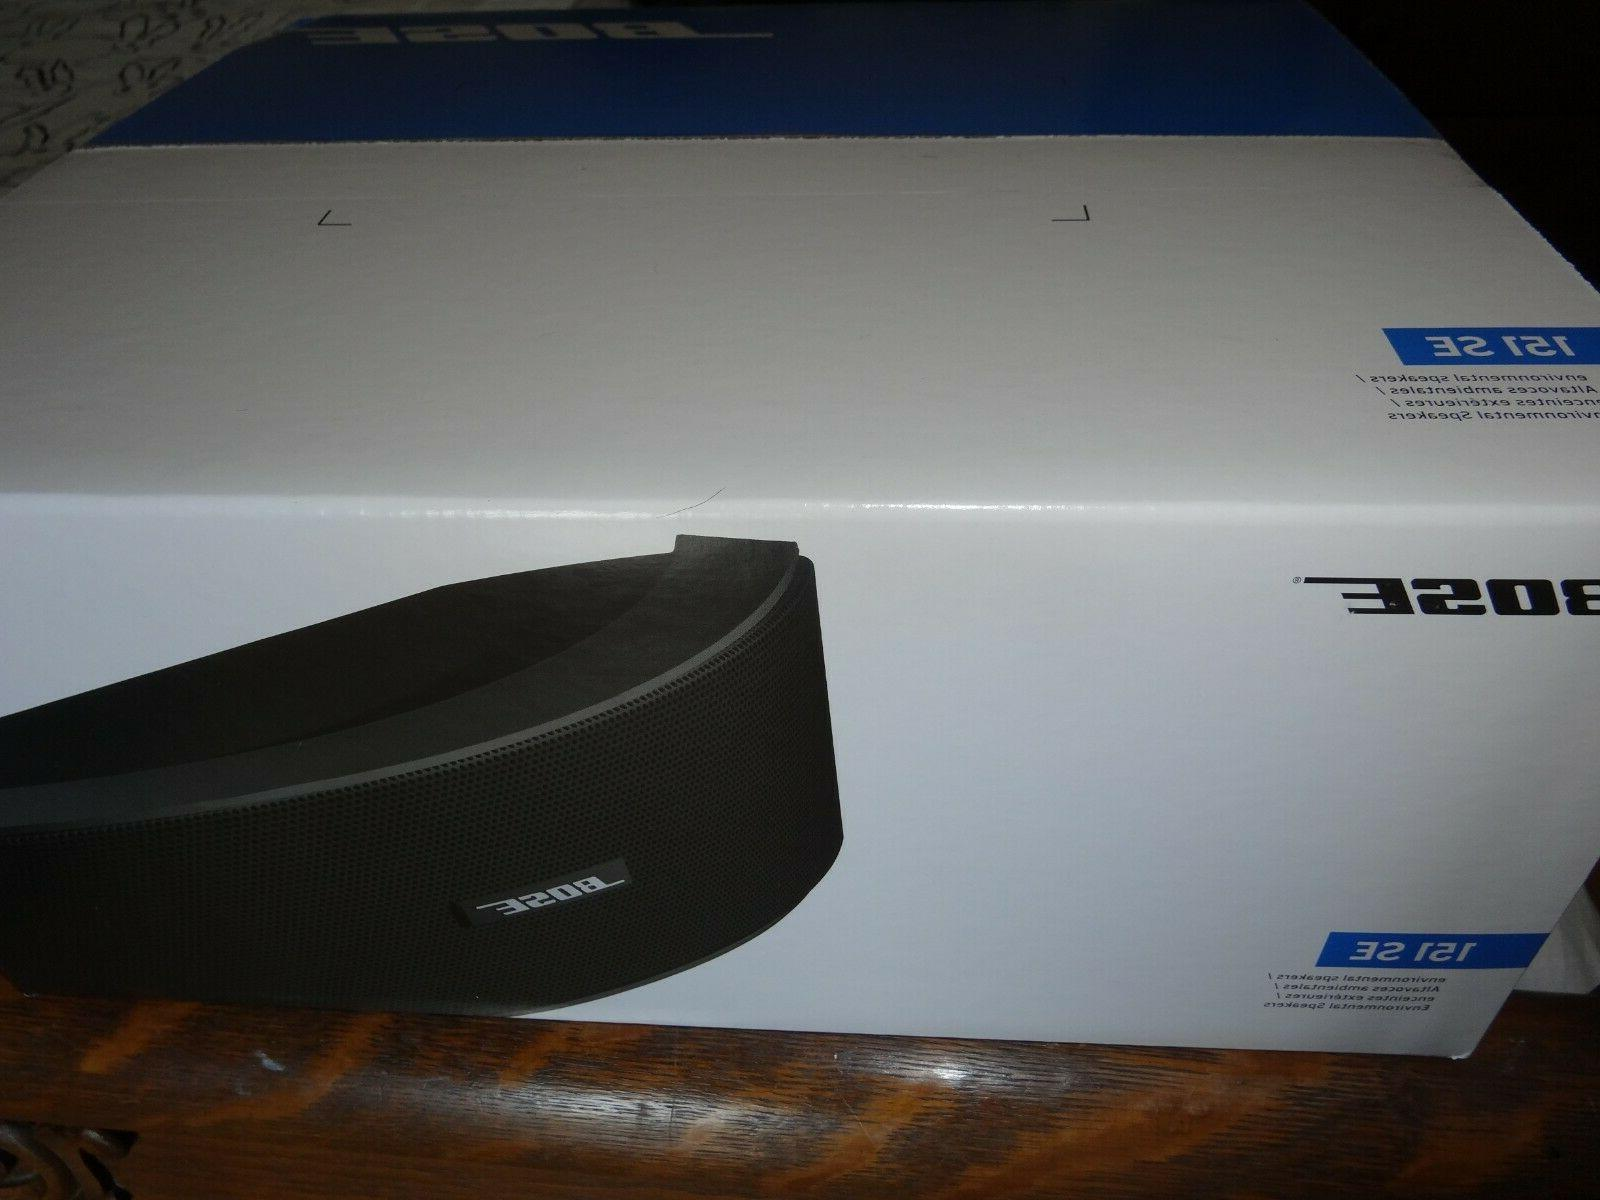 Bose 151 SE Speakers Brand New sealed Box outdoor boating + More